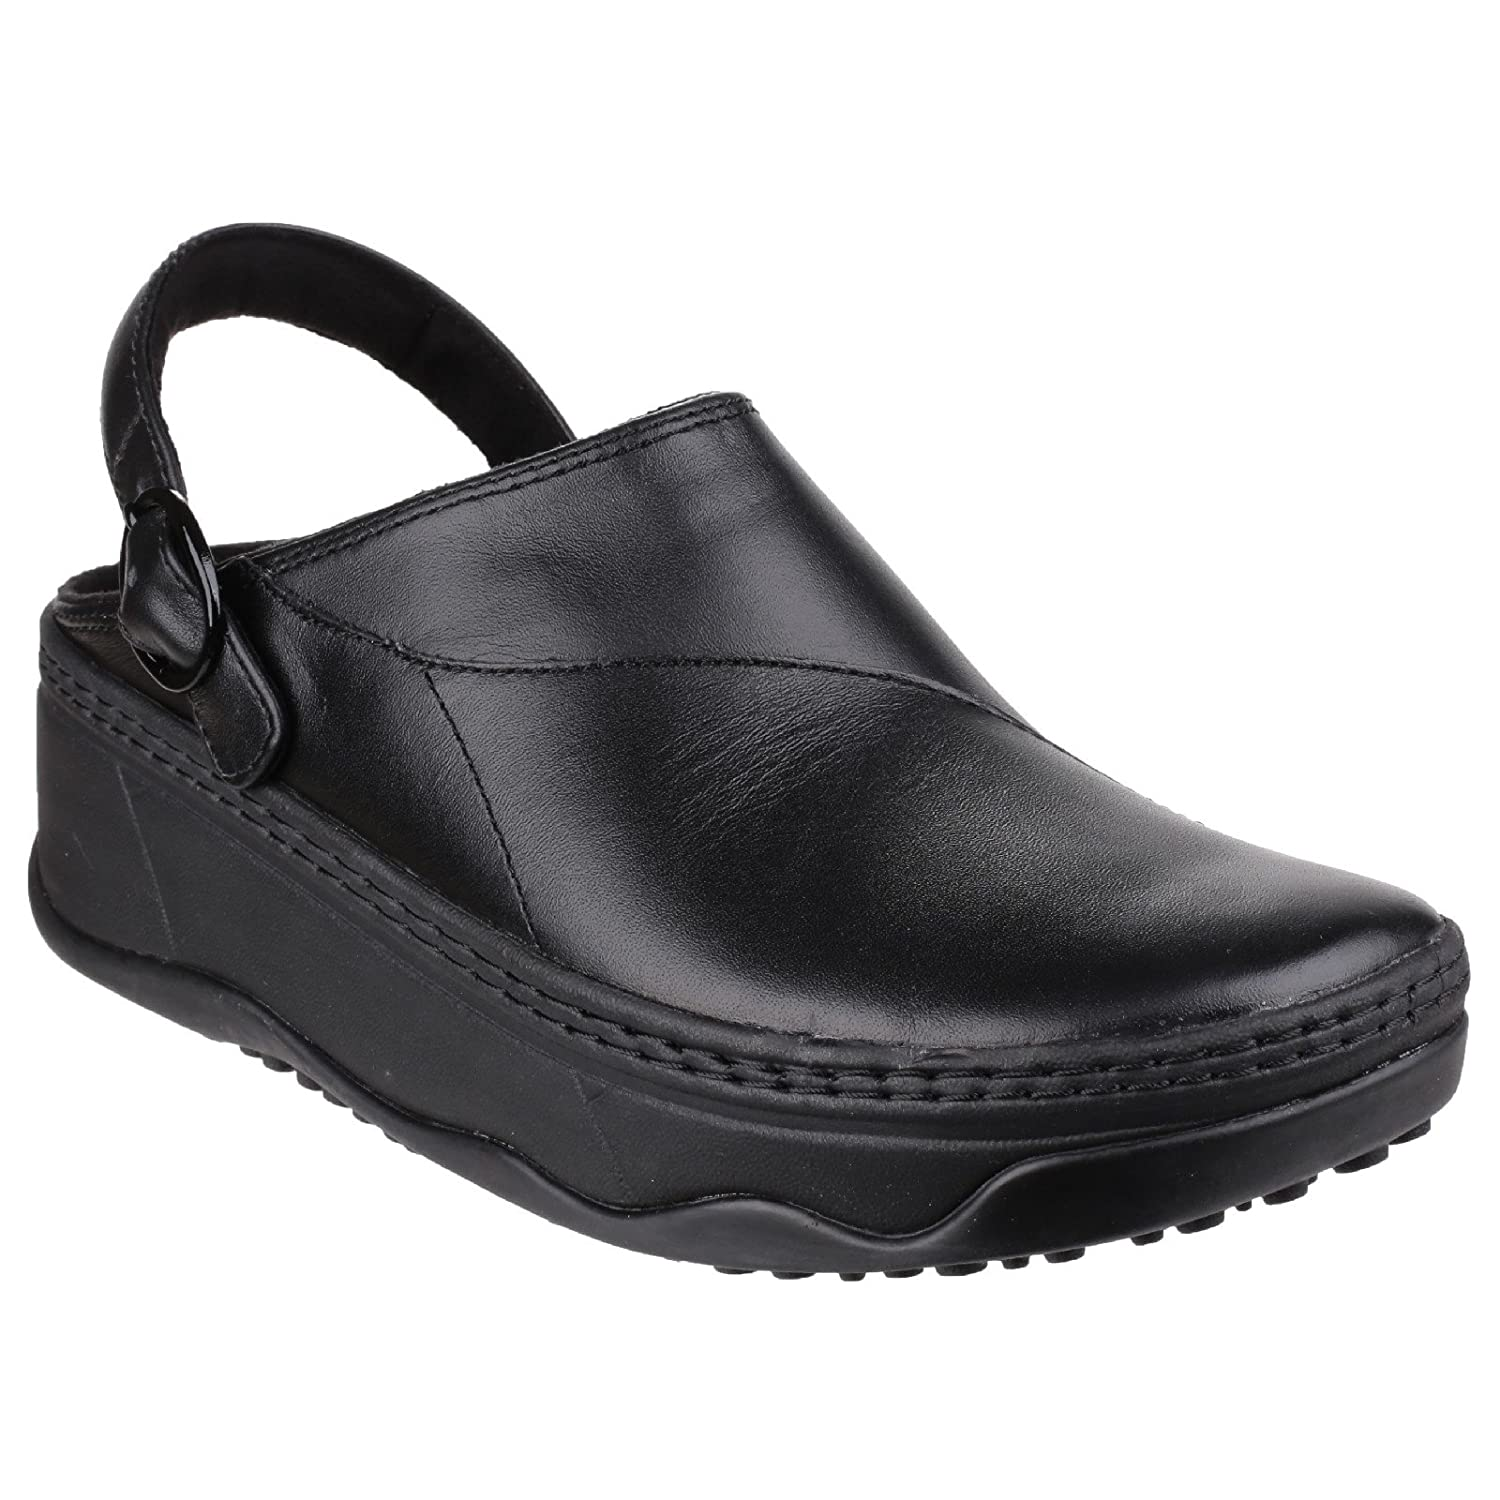 75a97f9475c Fitflop Women Gogh Pro Superlight Clogs  Amazon.co.uk  Shoes   Bags